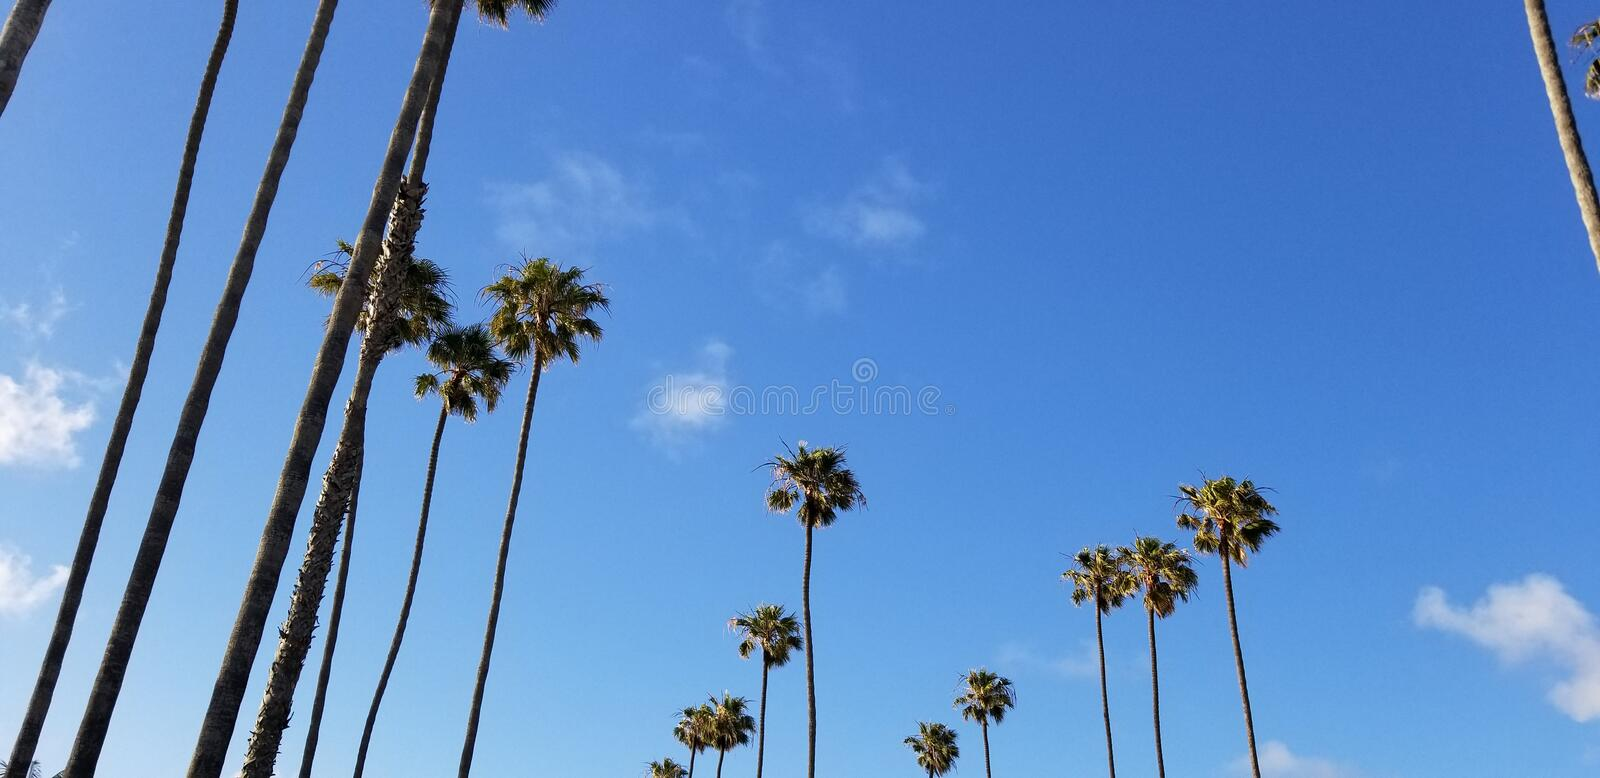 Tall palms against blue sky at Southern California beach town. A row of stately king palms planted in a row along the street in a Southern California beach town stock photography